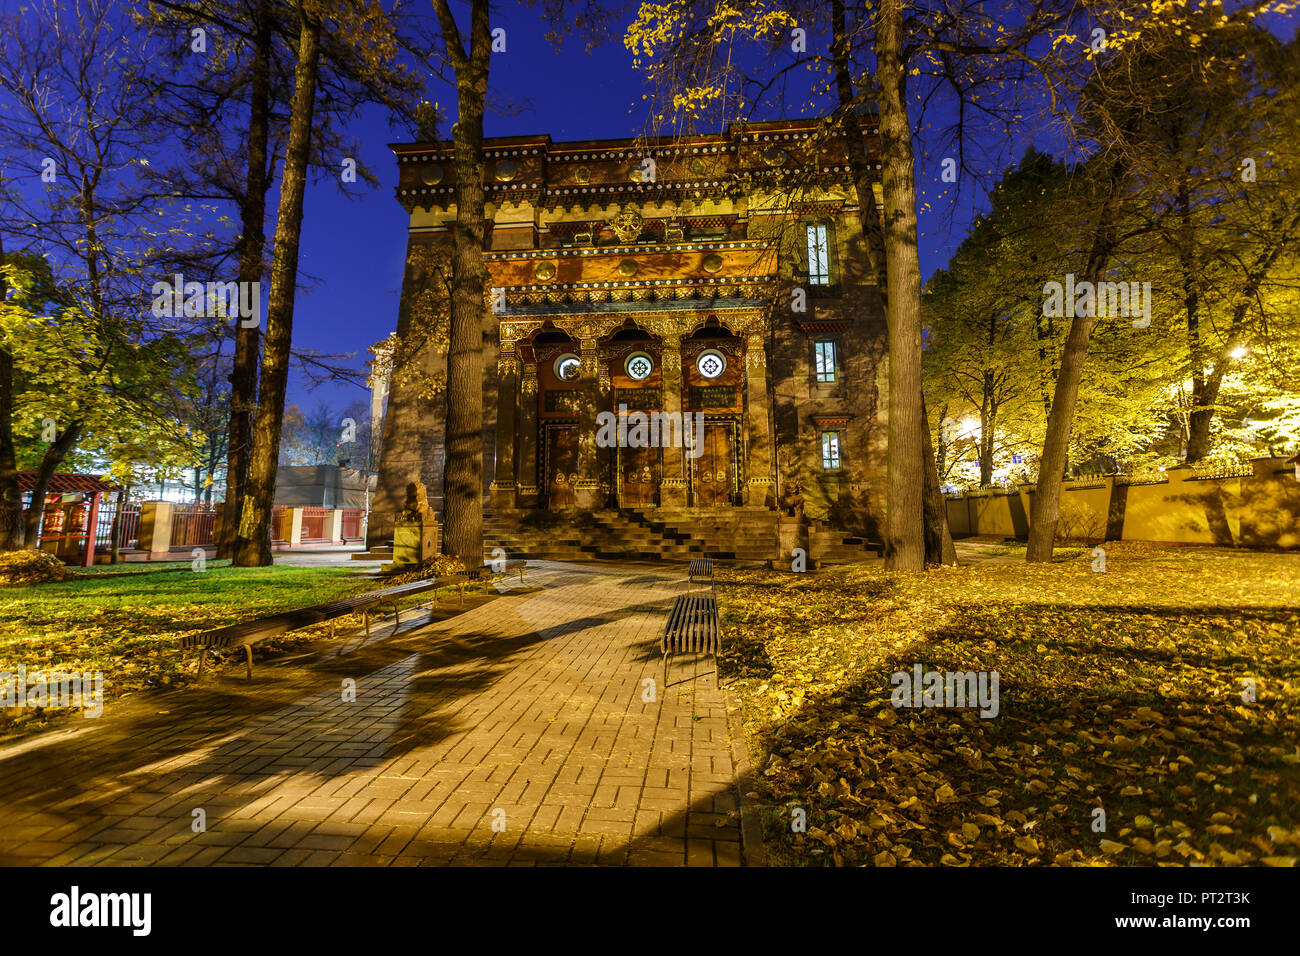 Building of St. Petersburg Buddhist temple 'Datsan Gunzehoyney'. Night view - Stock Image